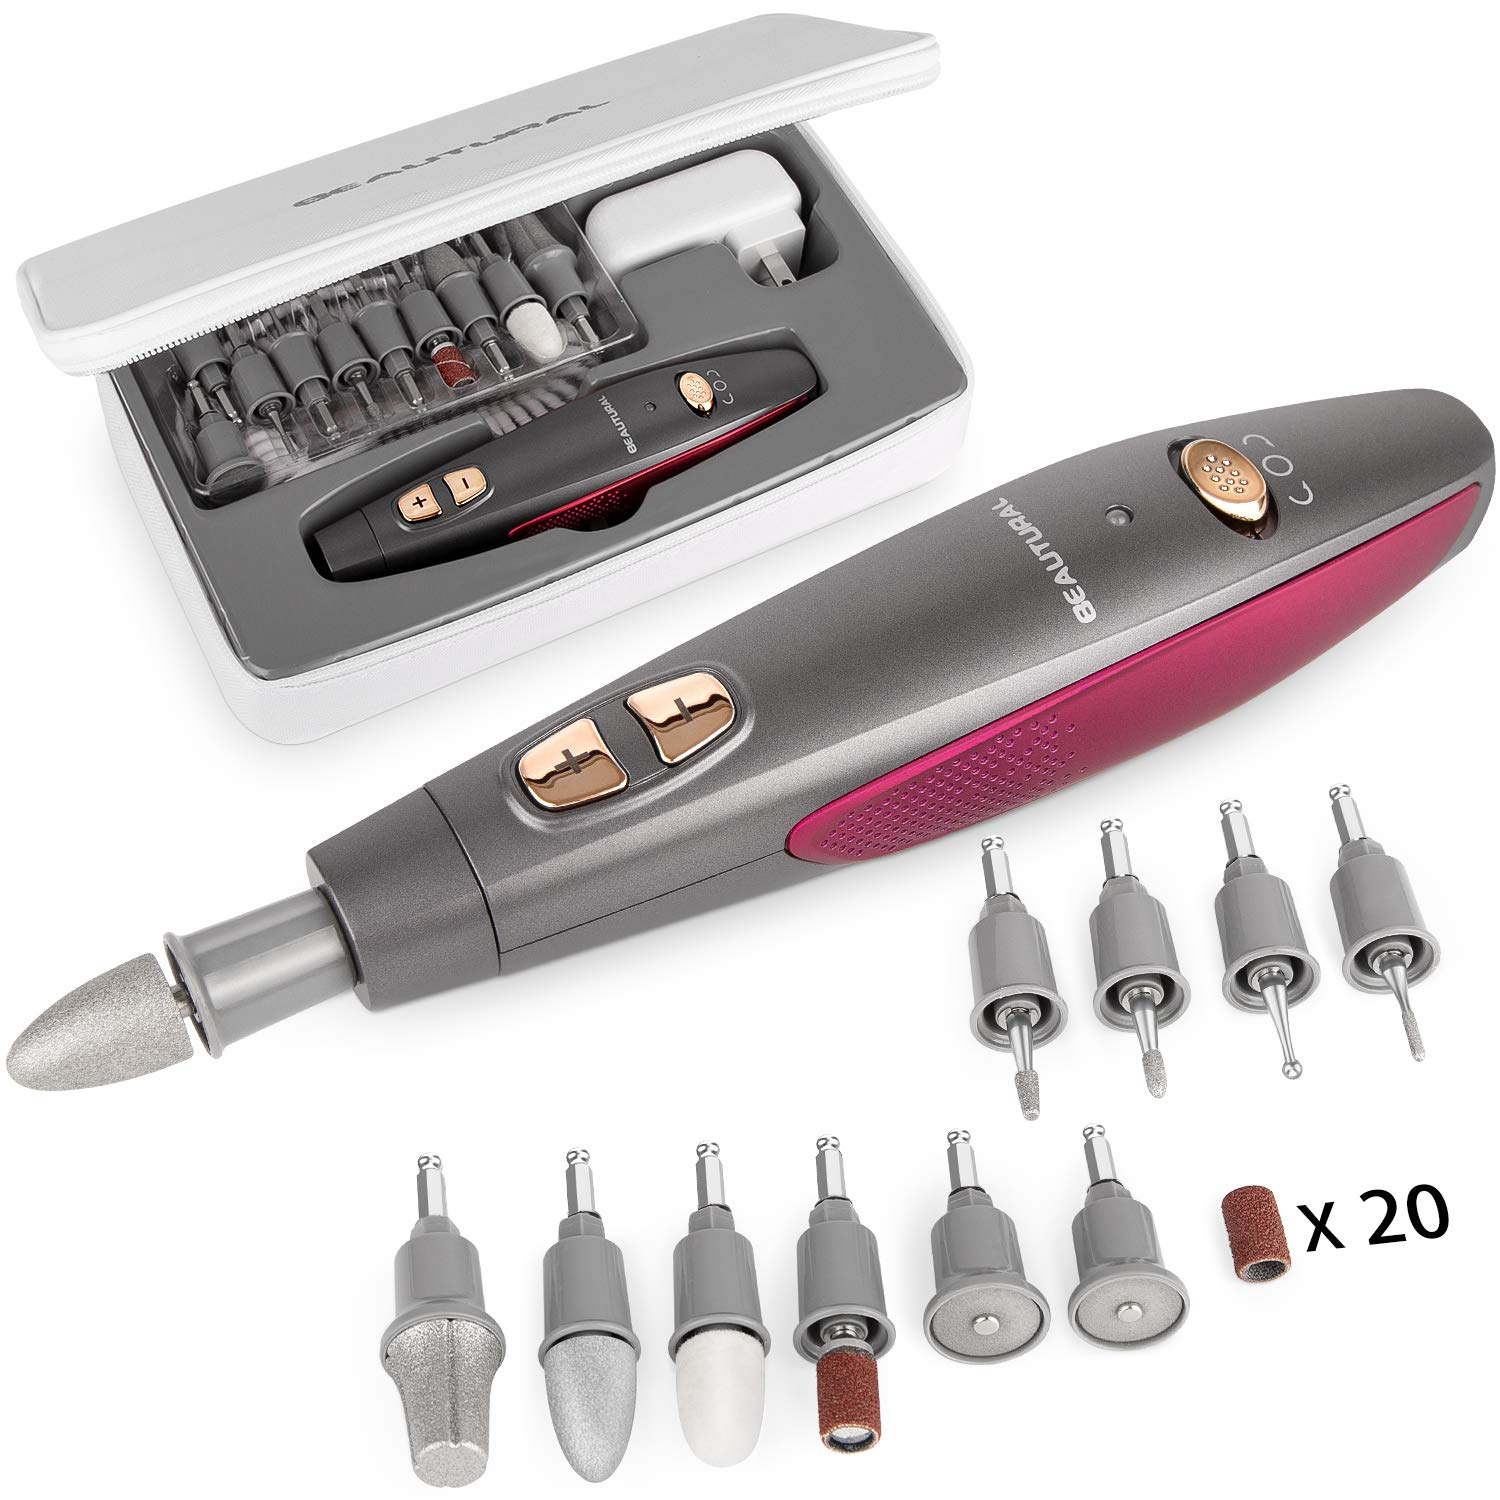 BEAUTURAL Professional Manicure and Pedicure Kit, 10-piece Attachments and 20 Sanding Bands for Hand/Foot Nail Care, Powerful Nail Drill Kit [Upgraded Version] : Beauty